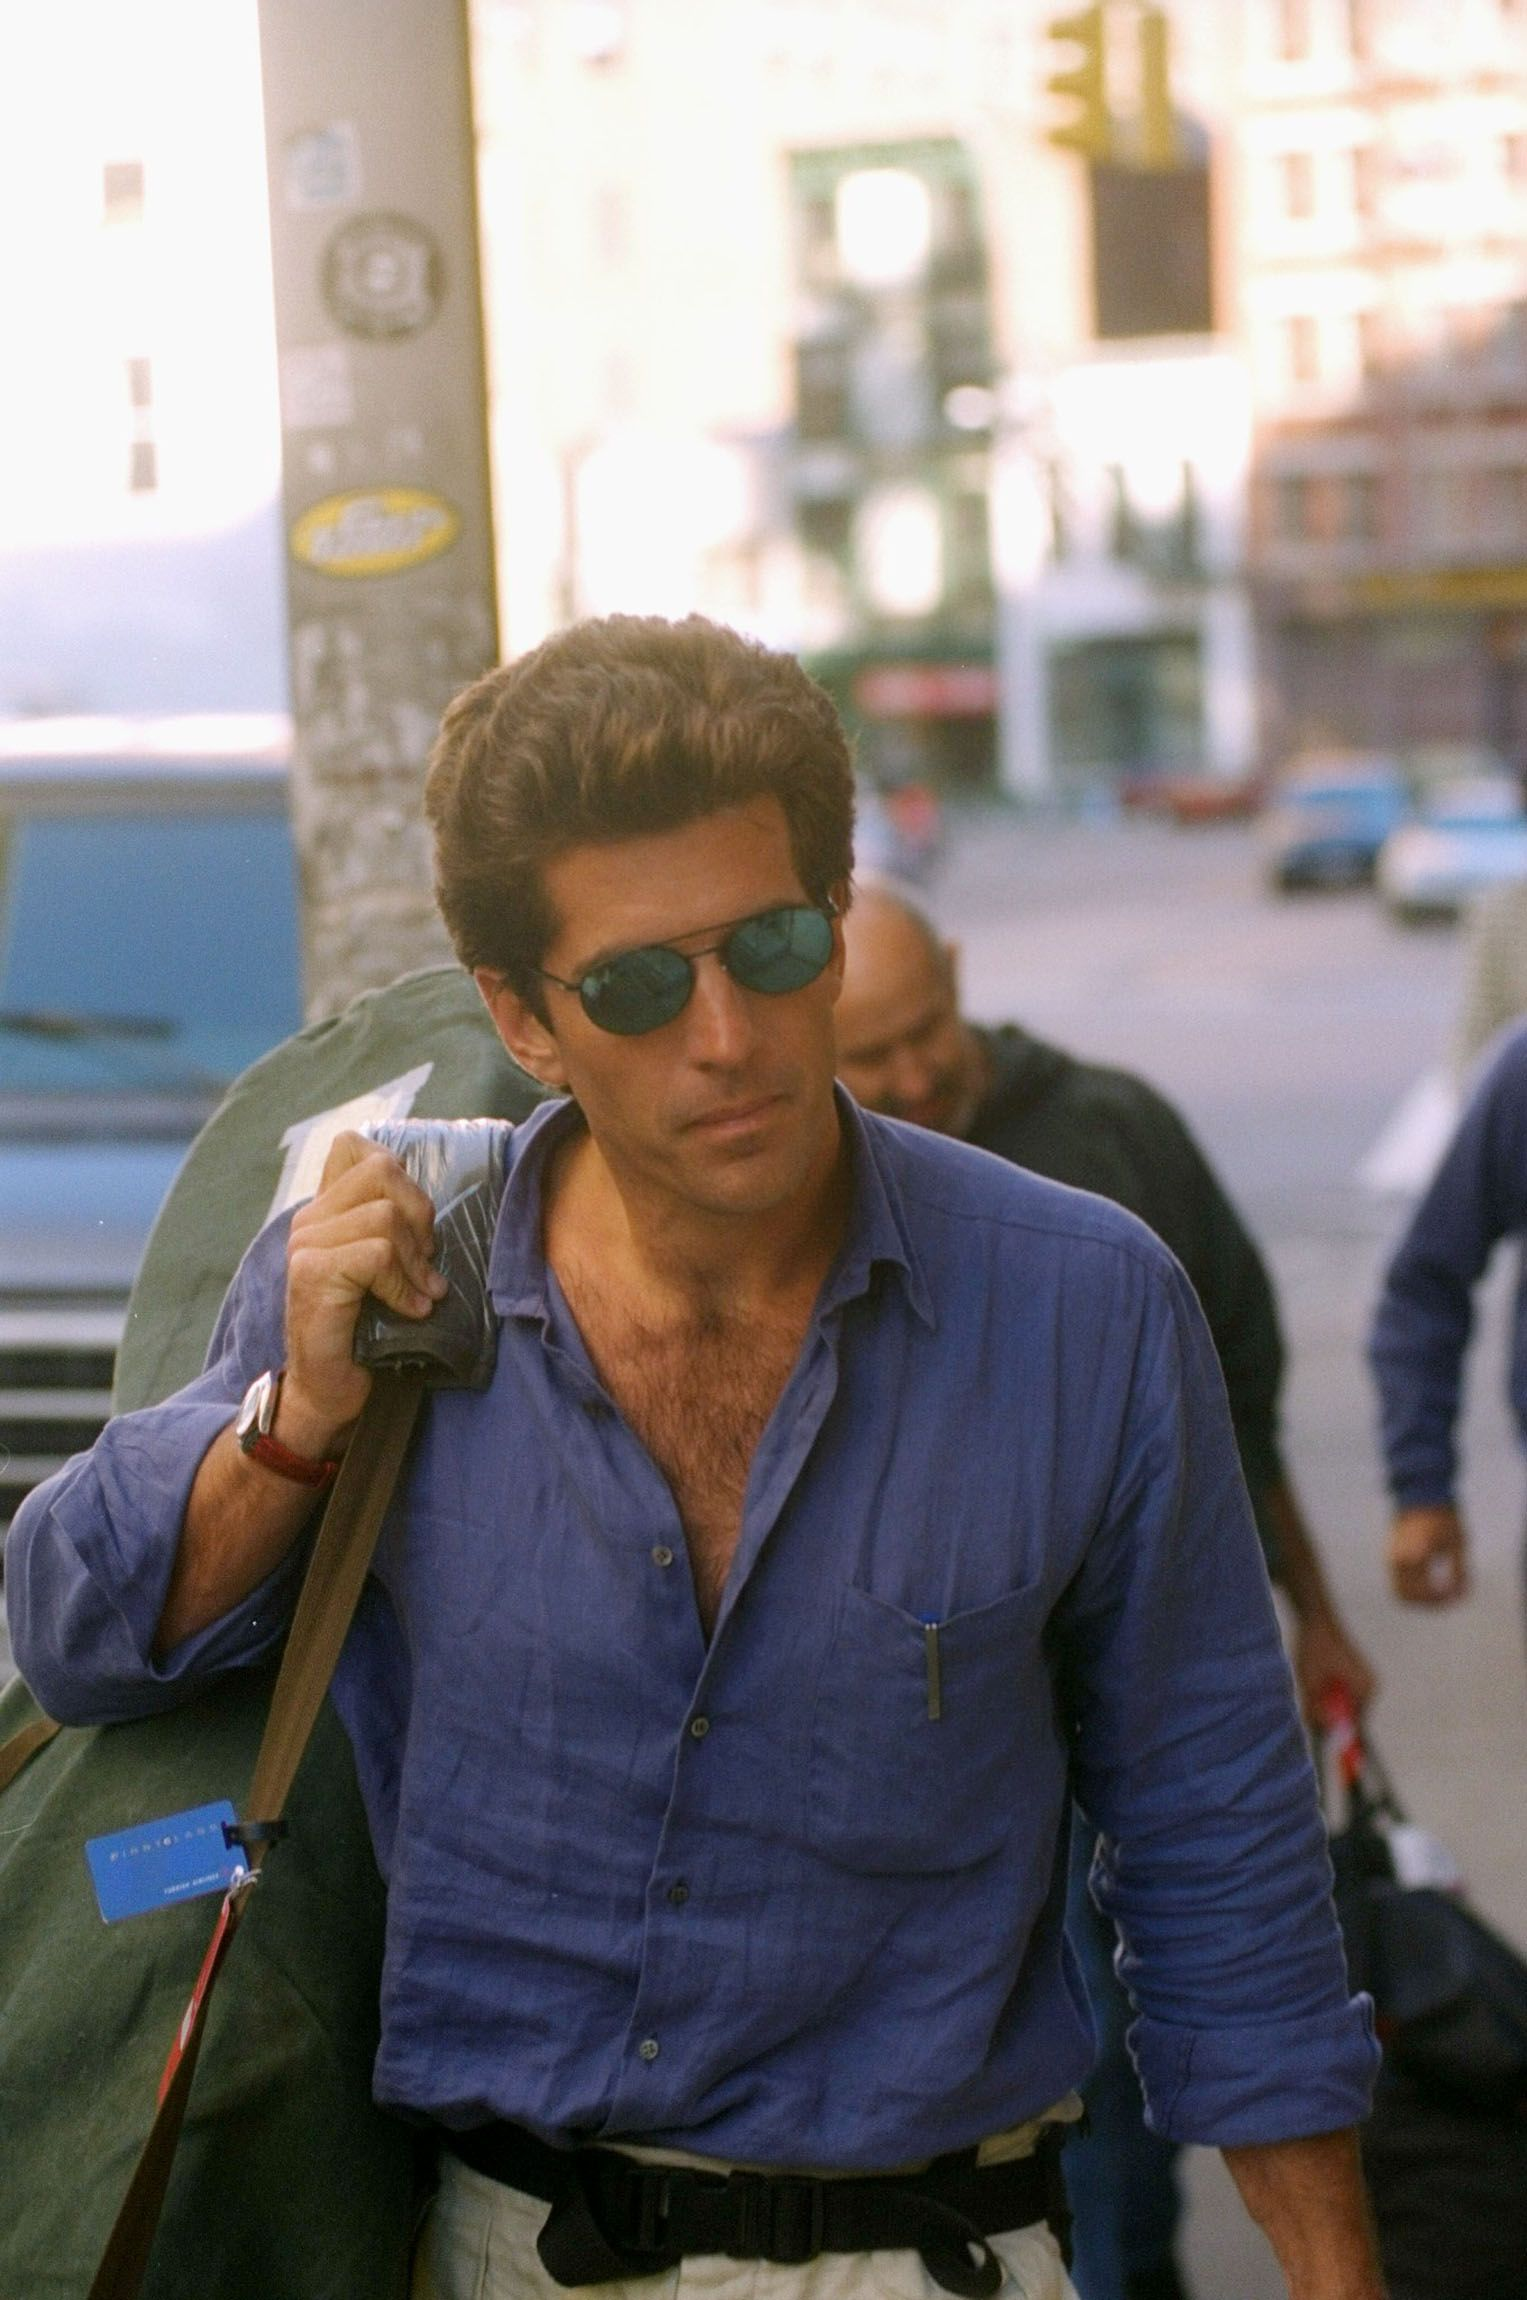 John F. Kennedy Jr. out in Tribeca, the New York City neighborhood where he lived with his wife Carolyn, in 1996.